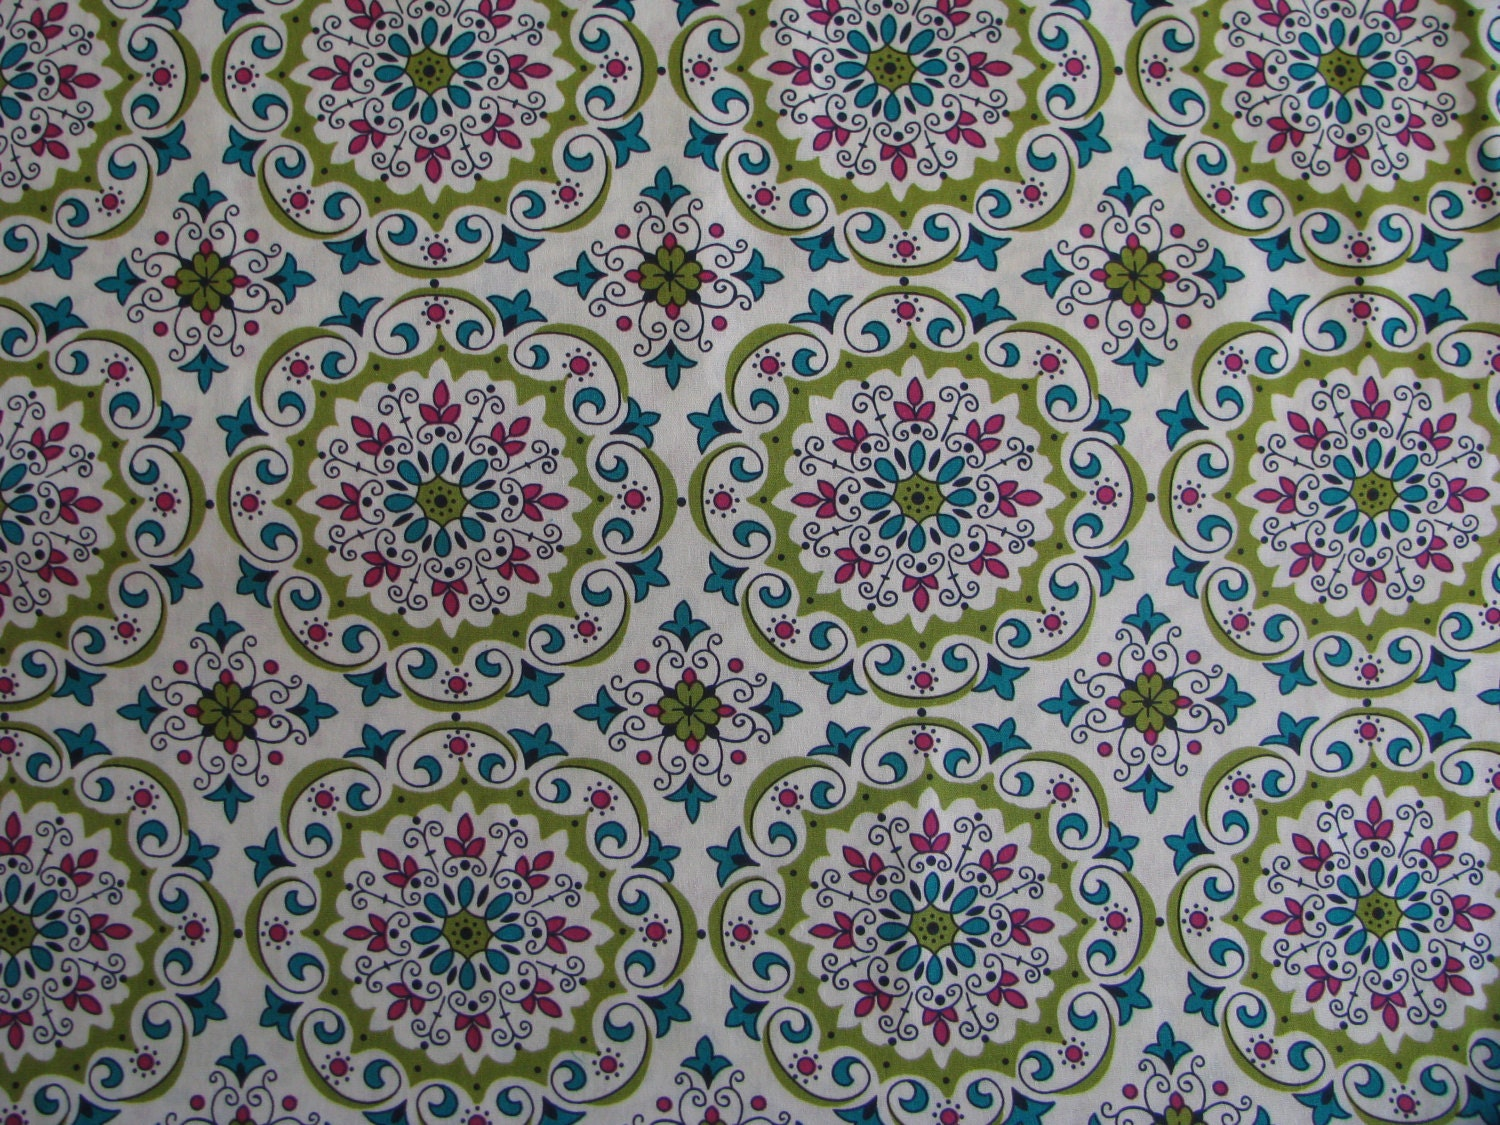 mandala fabric 7 8 yd remnant cotton geometric print natural. Black Bedroom Furniture Sets. Home Design Ideas